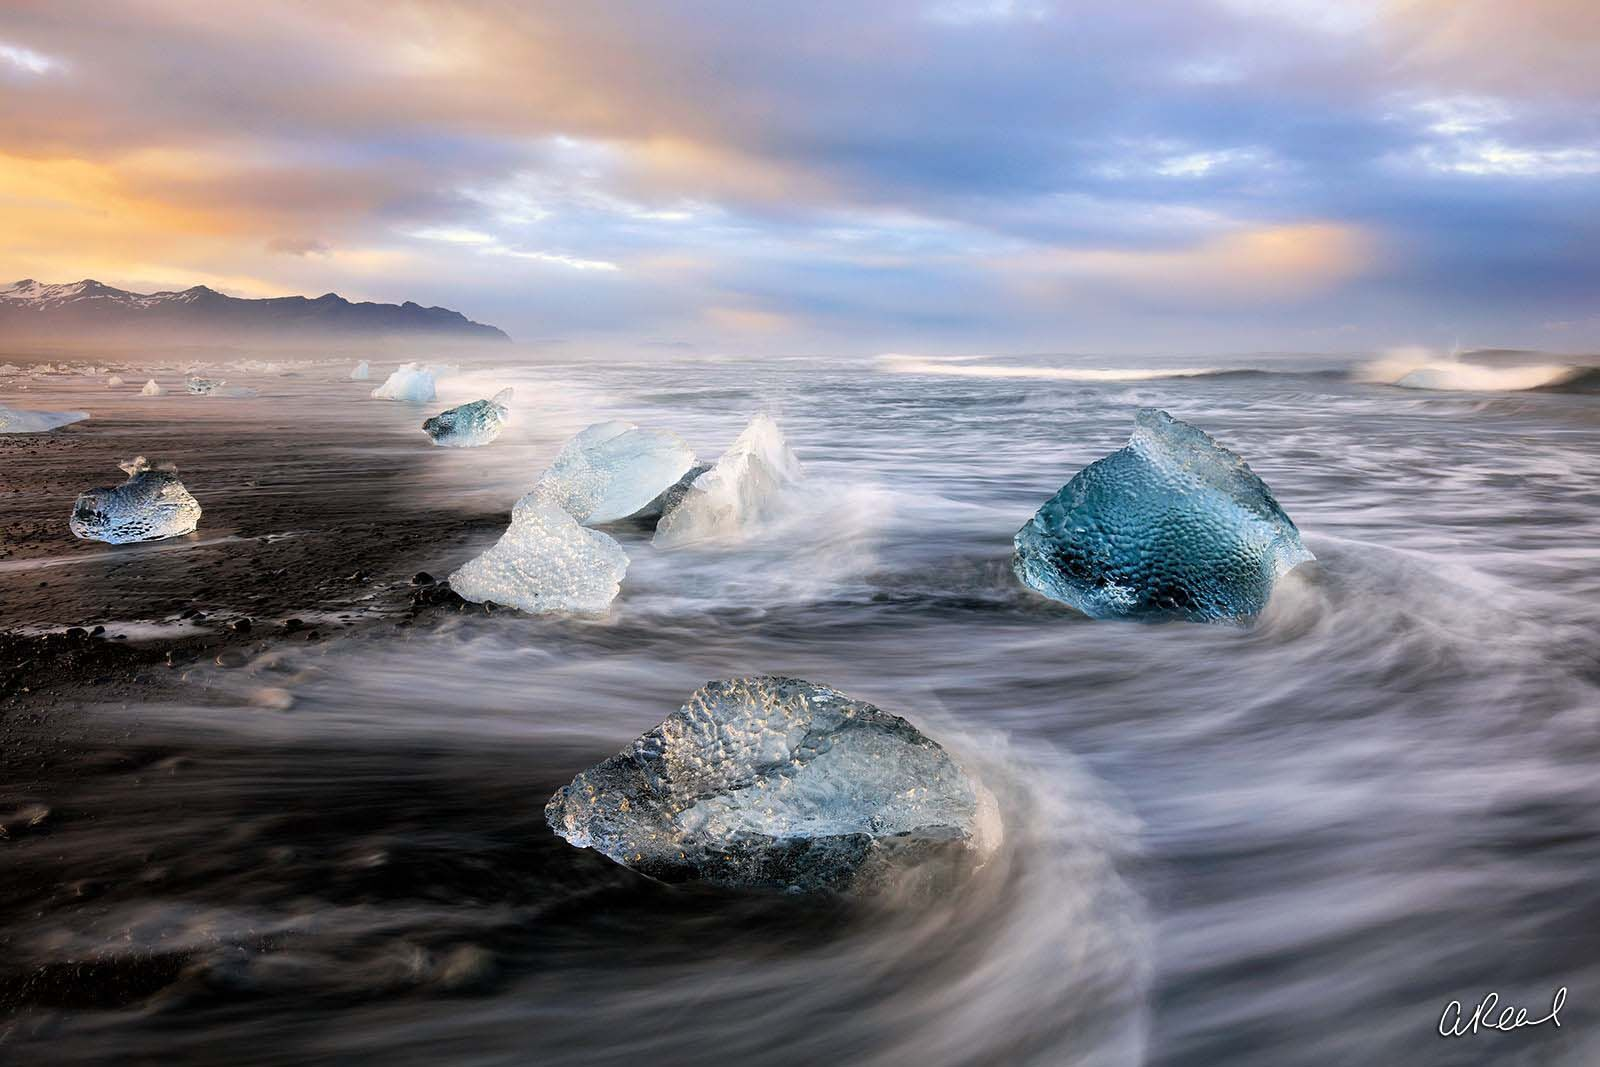 limited edition, fine art, black sand beach, Iceland, photo